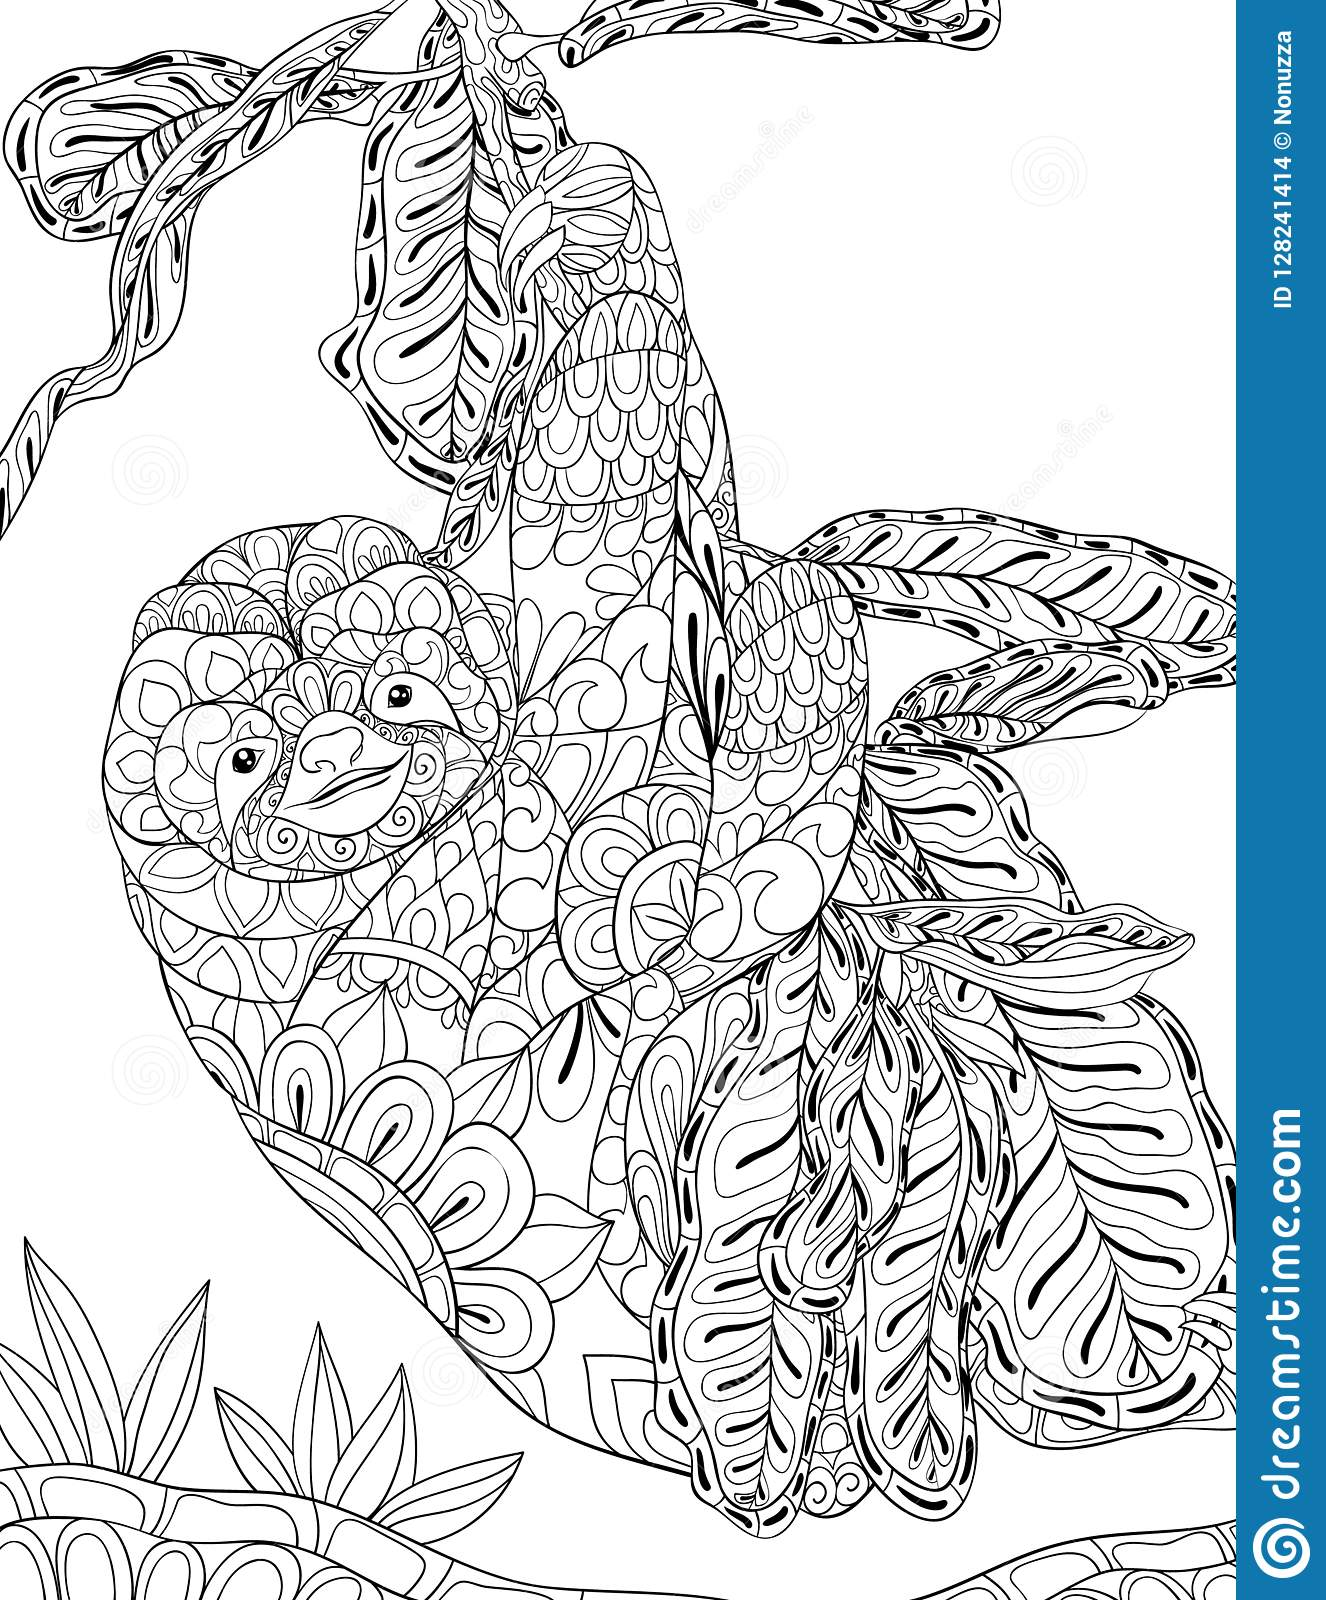 Adult Coloring Bookpage A Cute Sloth On The Brunch Image For